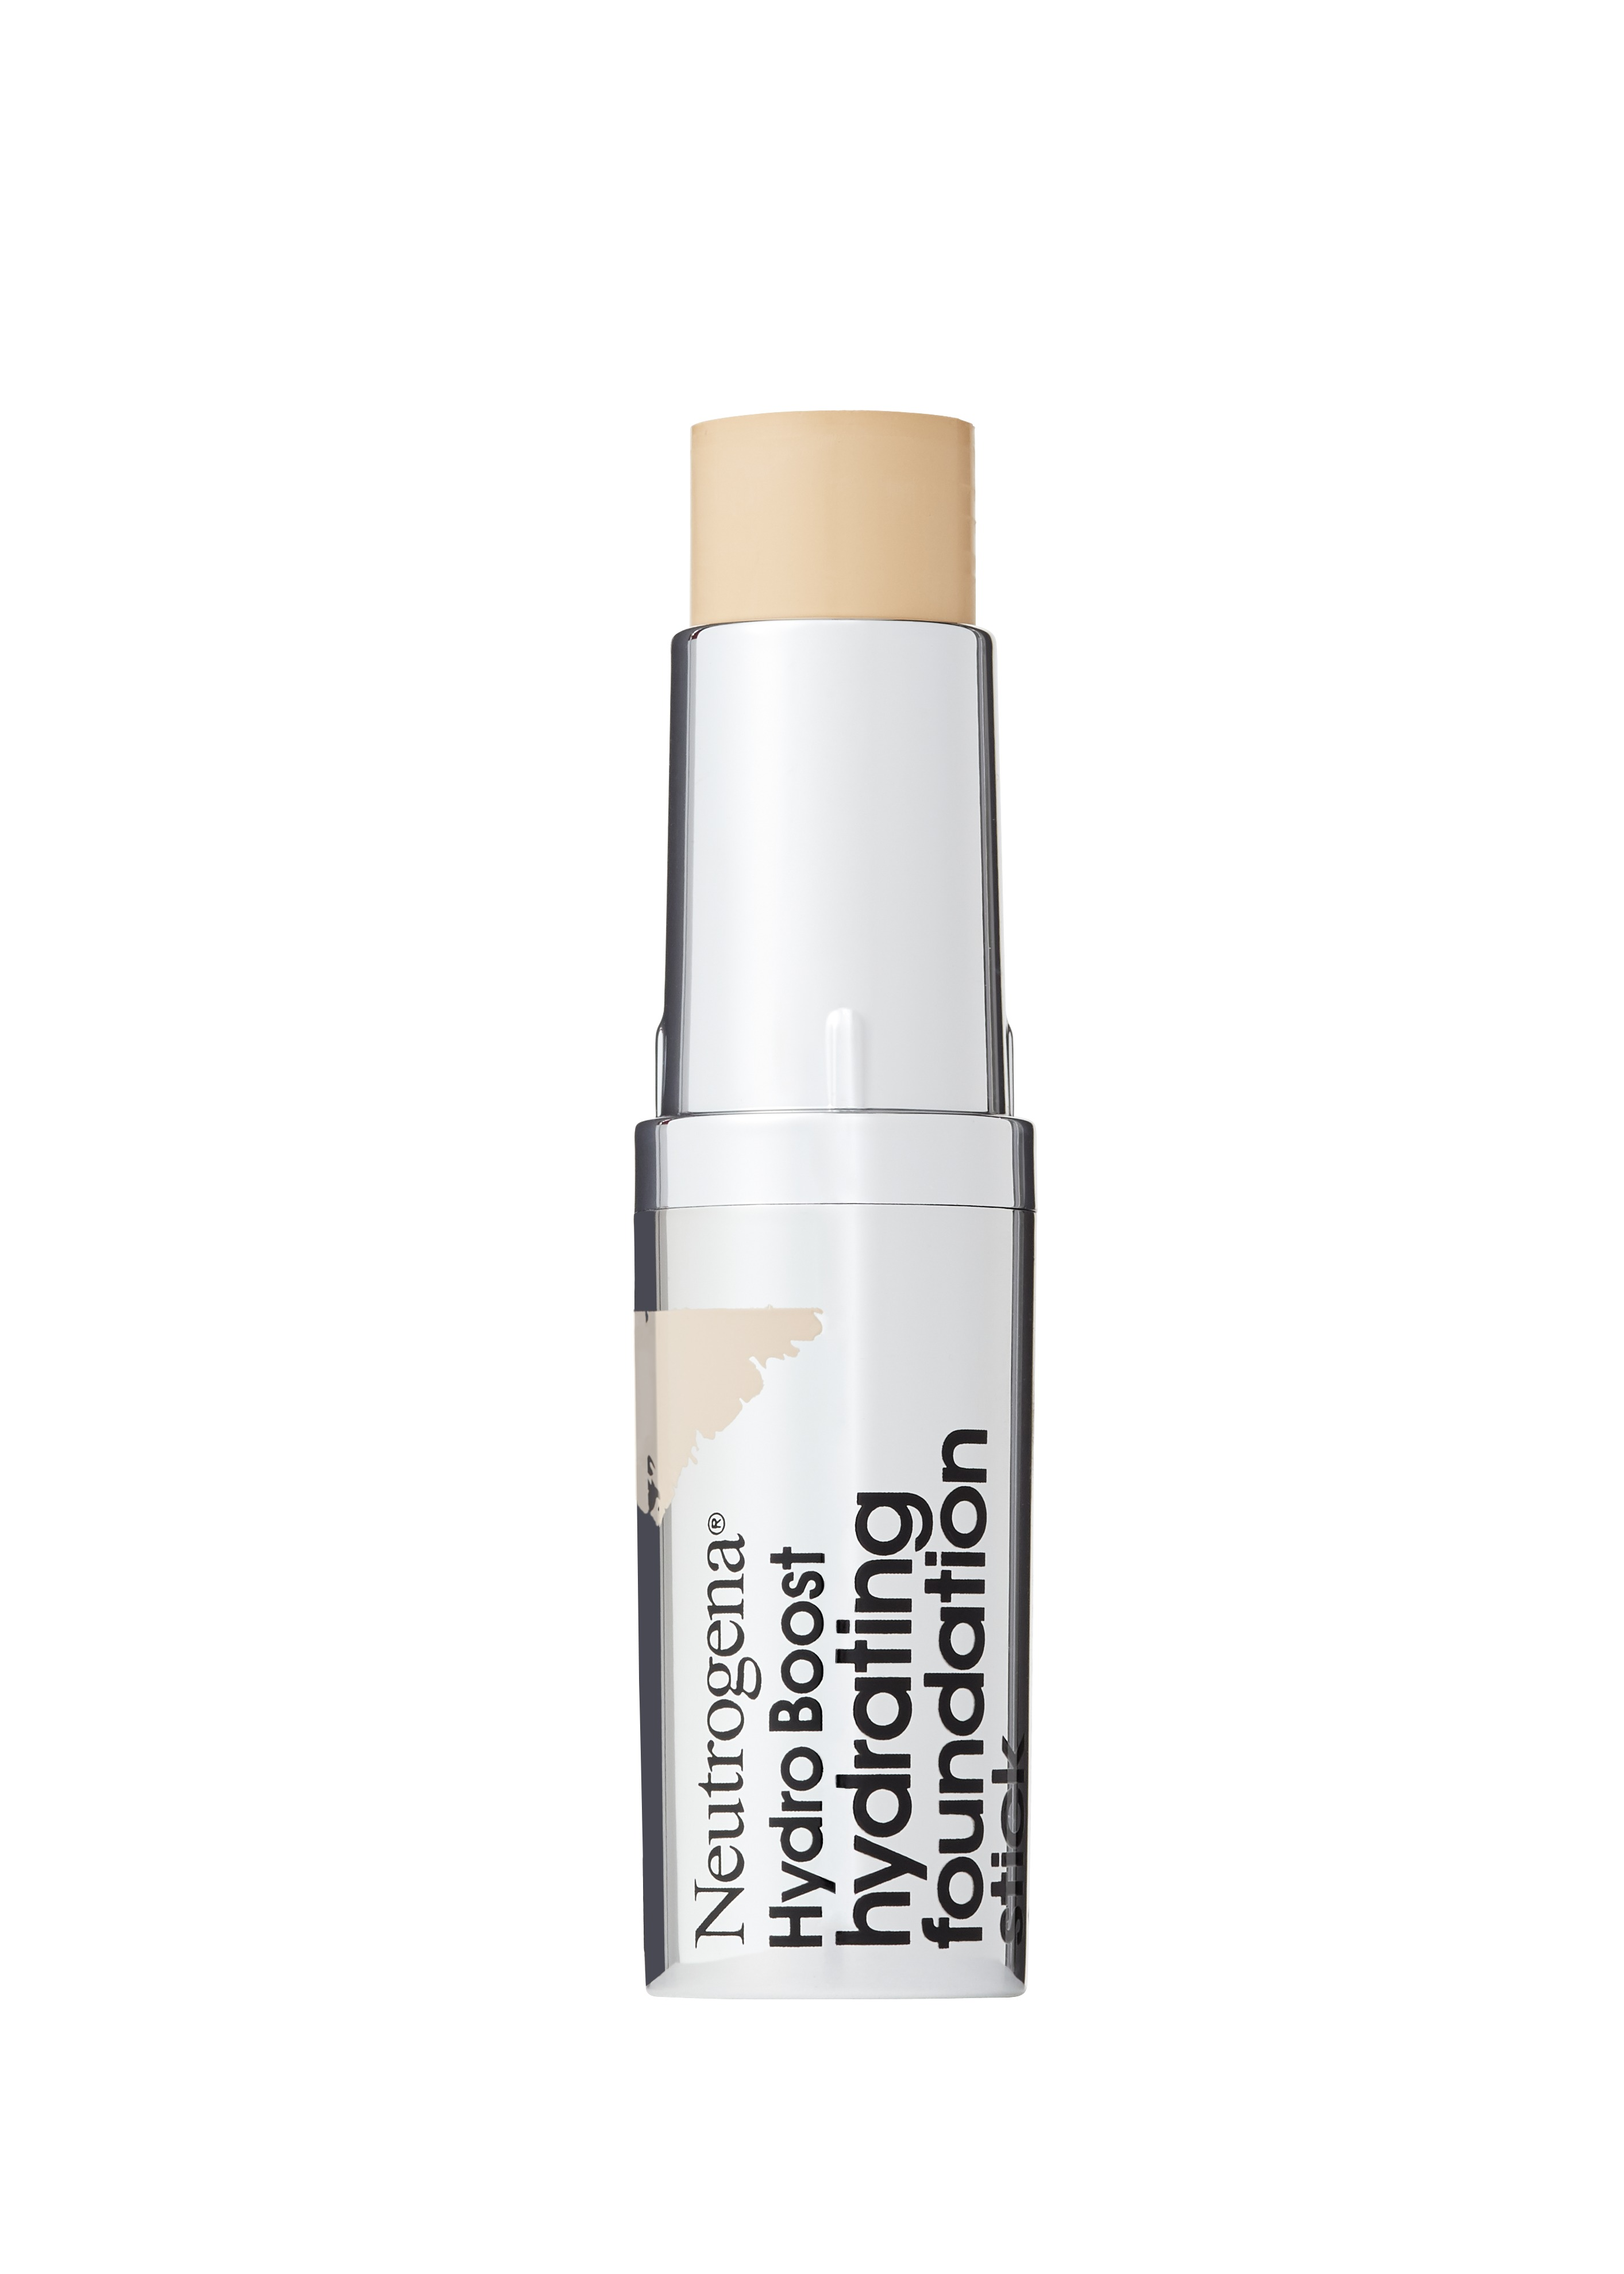 Neutrogena Hydro Boost Hydrating Makeup Stick, Classic Ivory, 0.29 oz